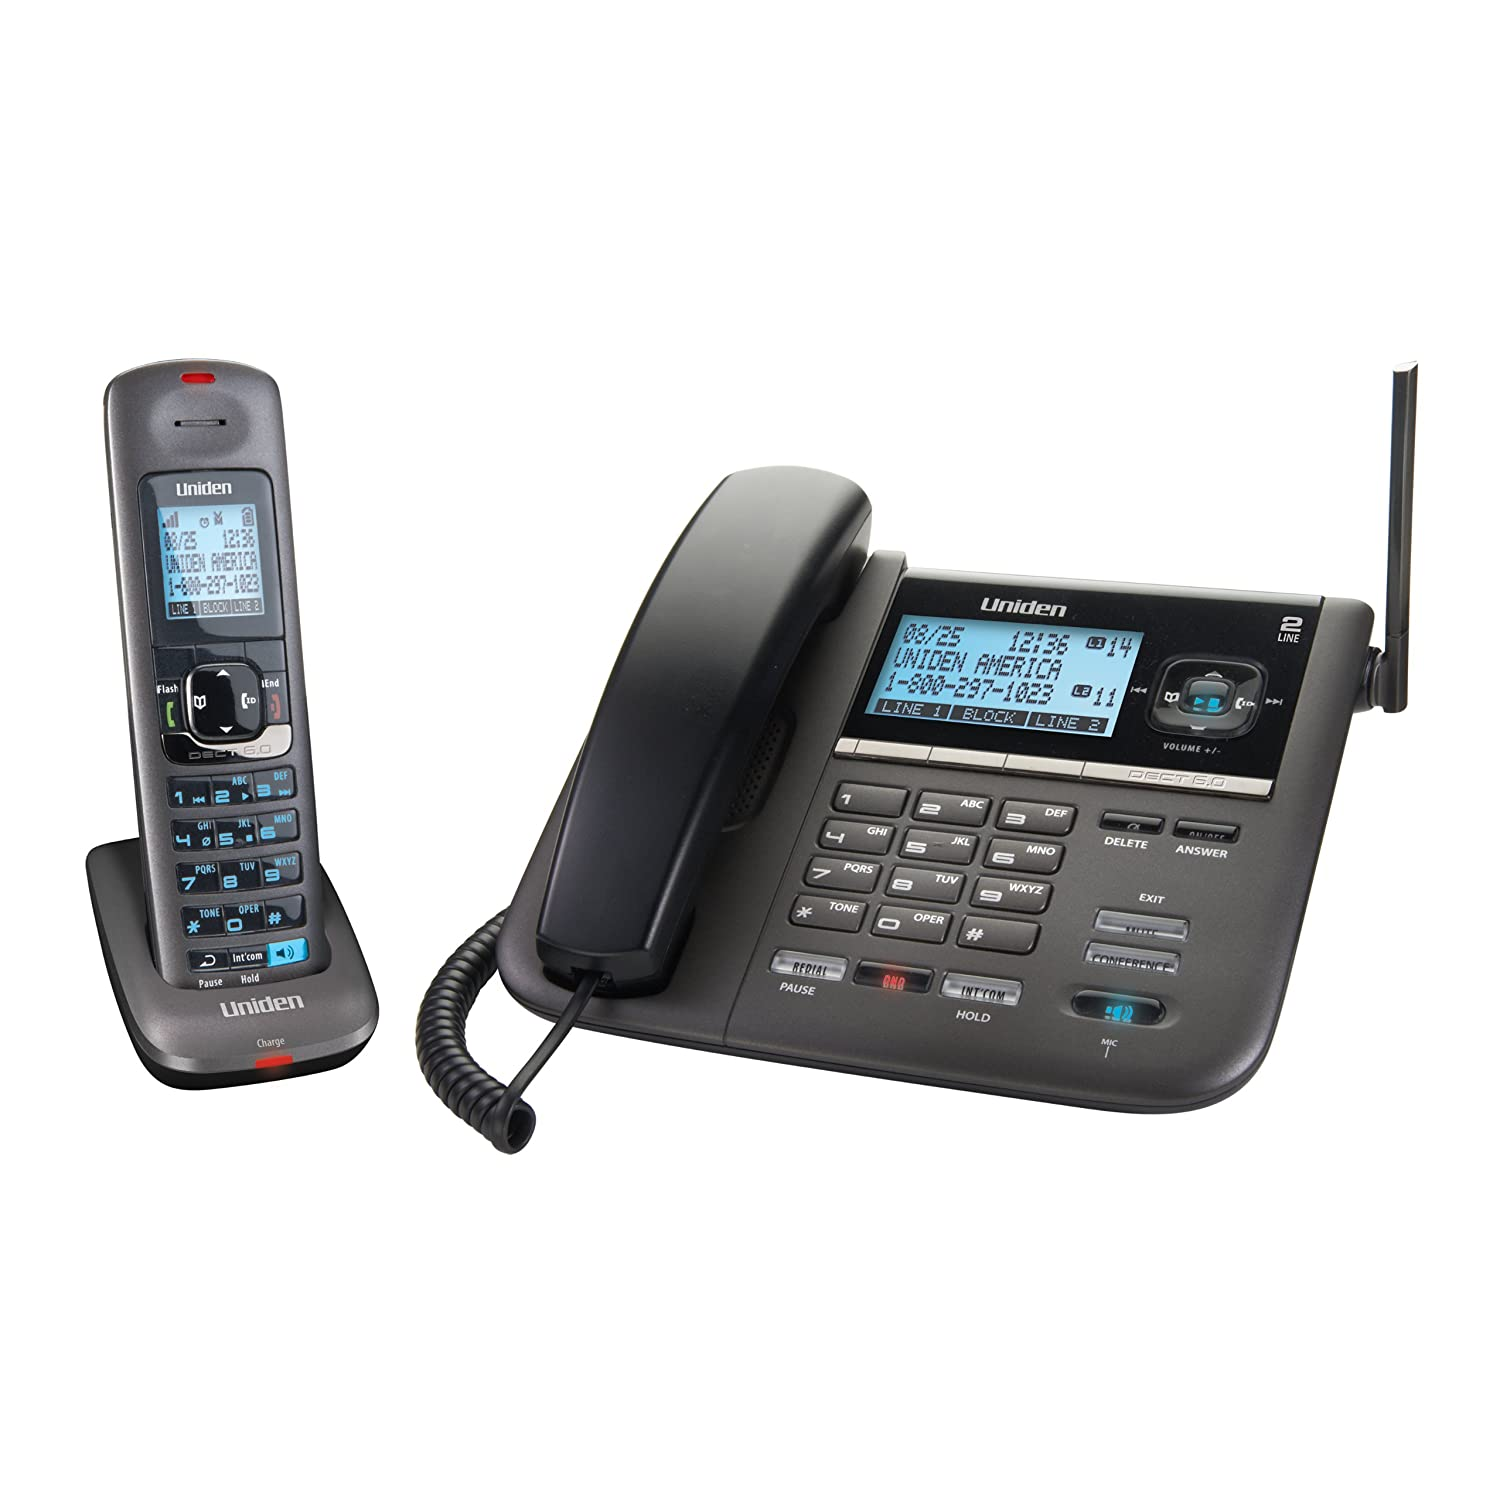 Amazon.com : Uniden DECT4096 DECT 6.0 Two-Line Cordless Phone with Digital  Answering System and Caller ID (Black) : Cordless Telephones : Electronics